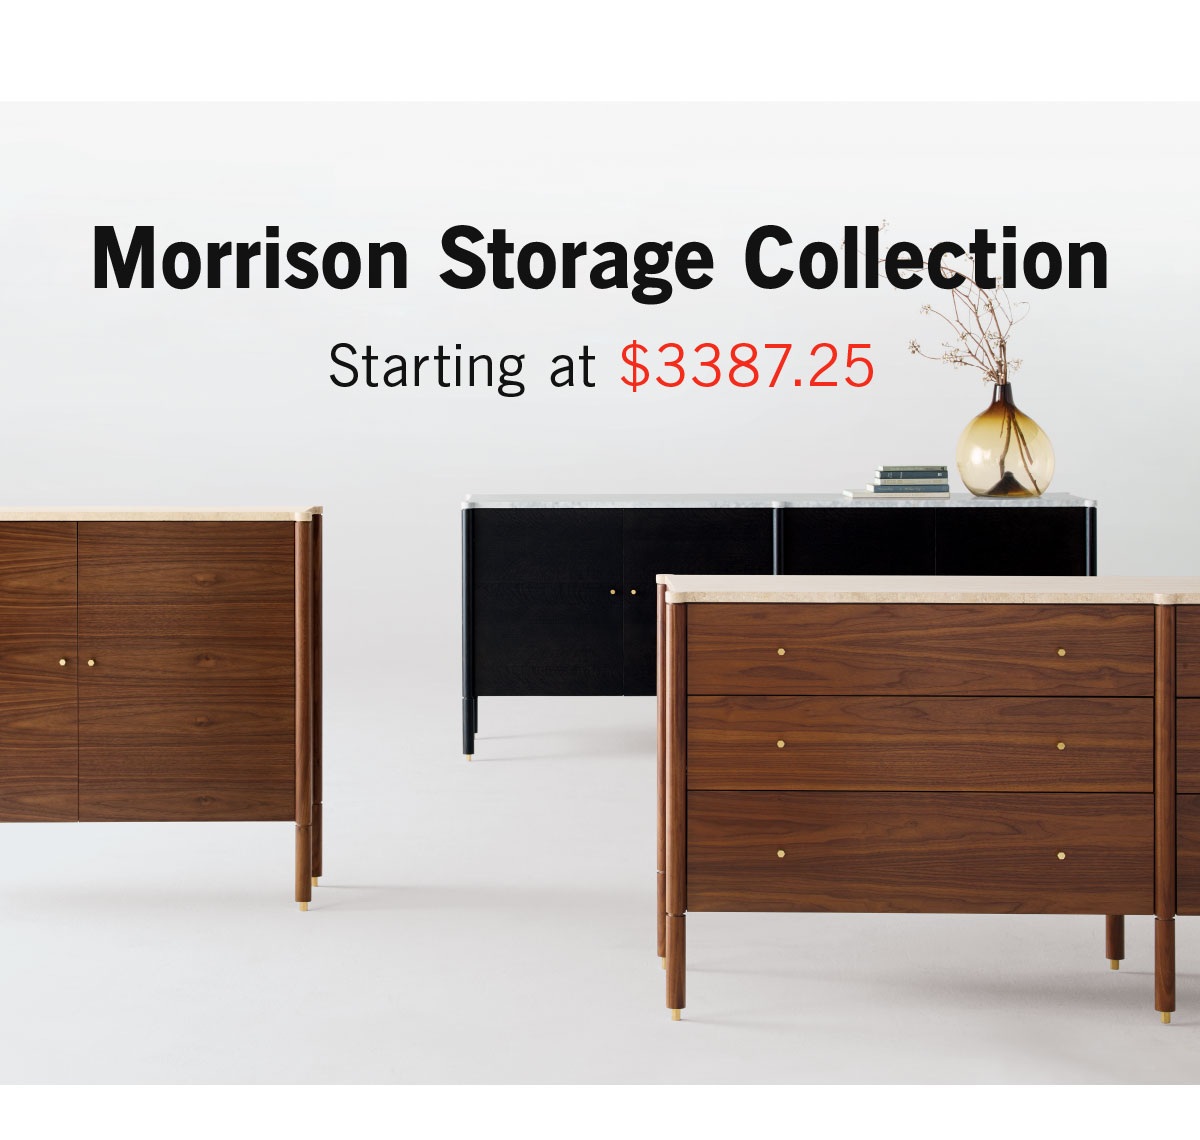 Morrison Storage Collection